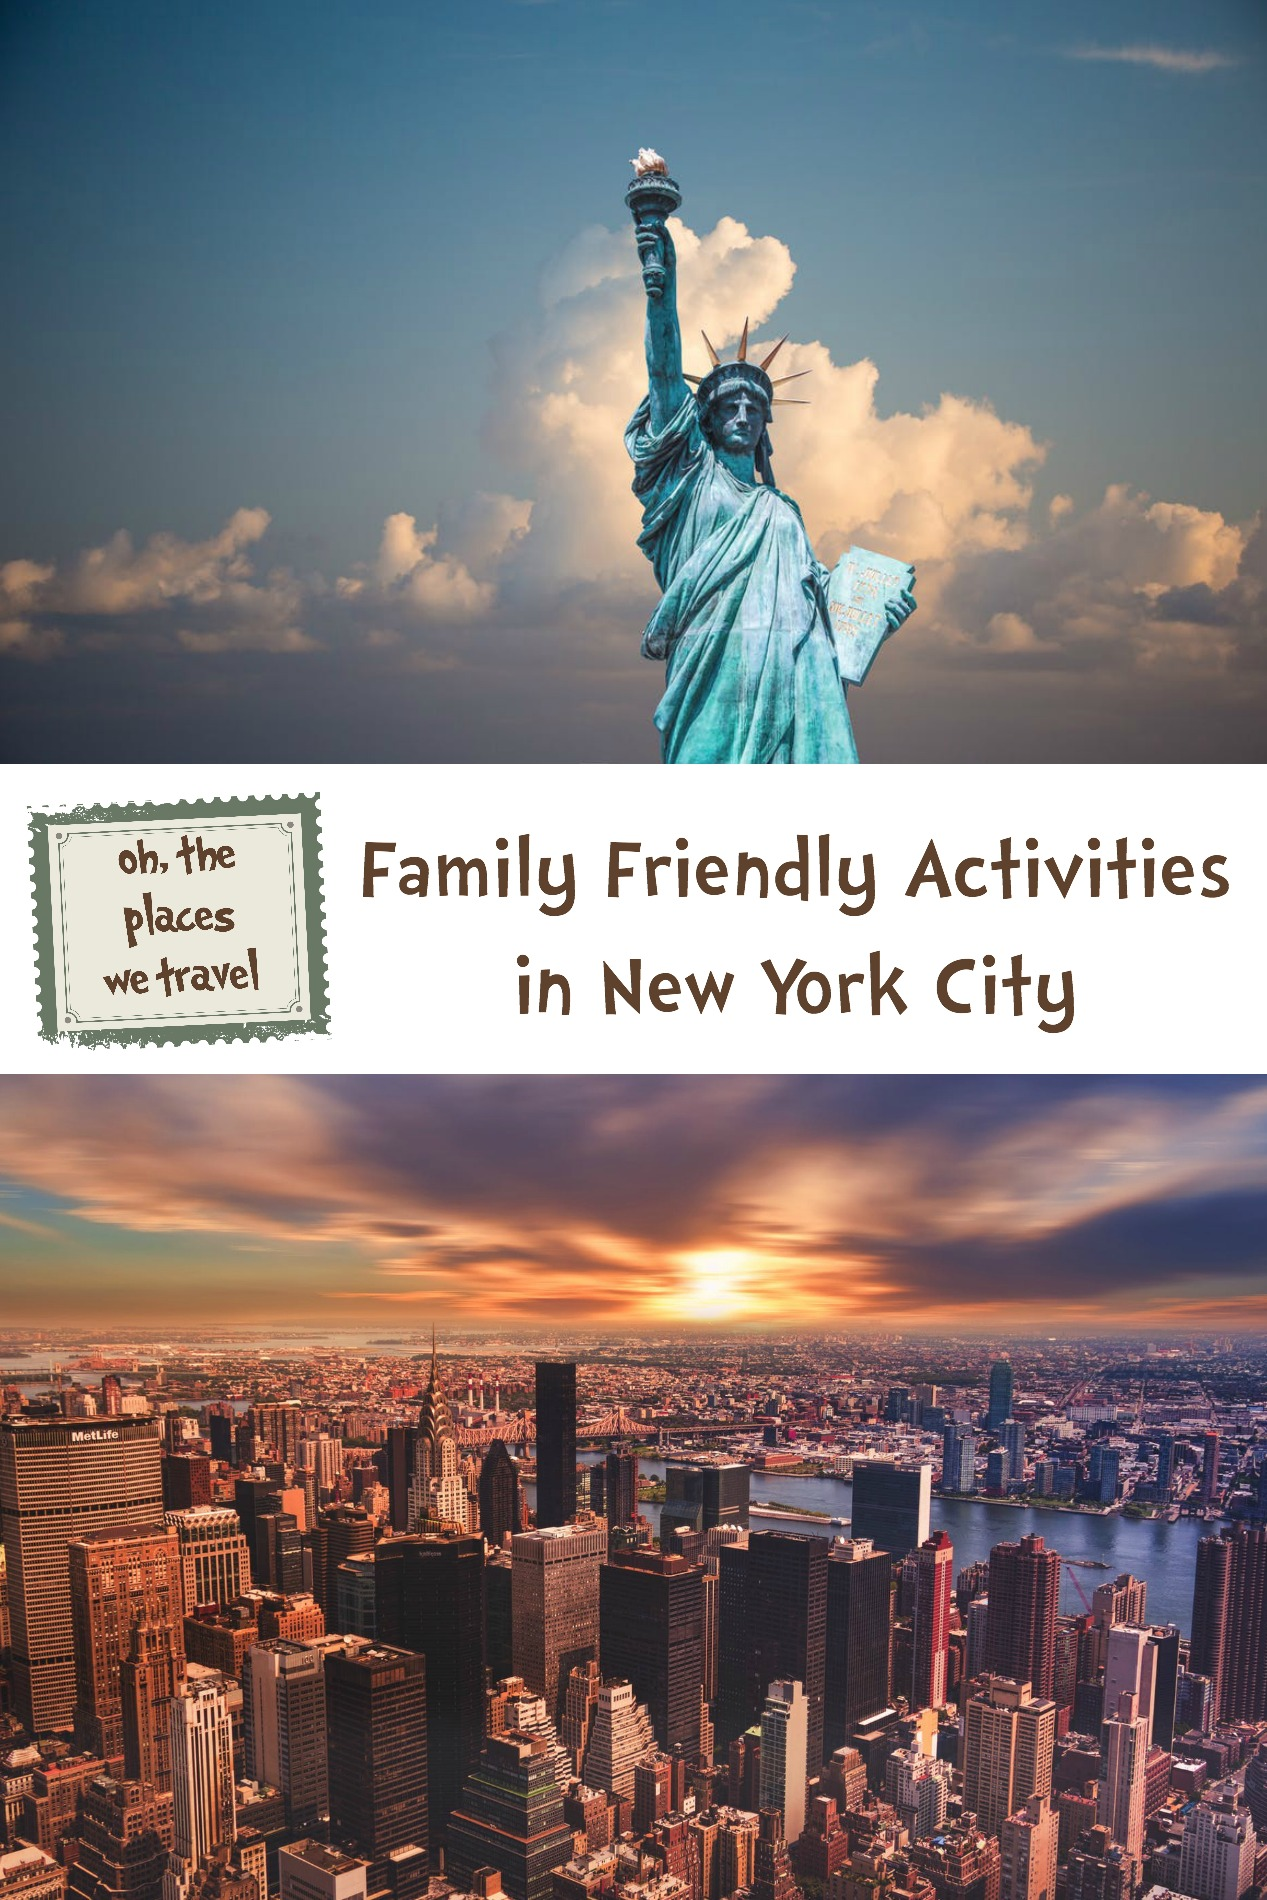 Family Friendly Activities in New York City